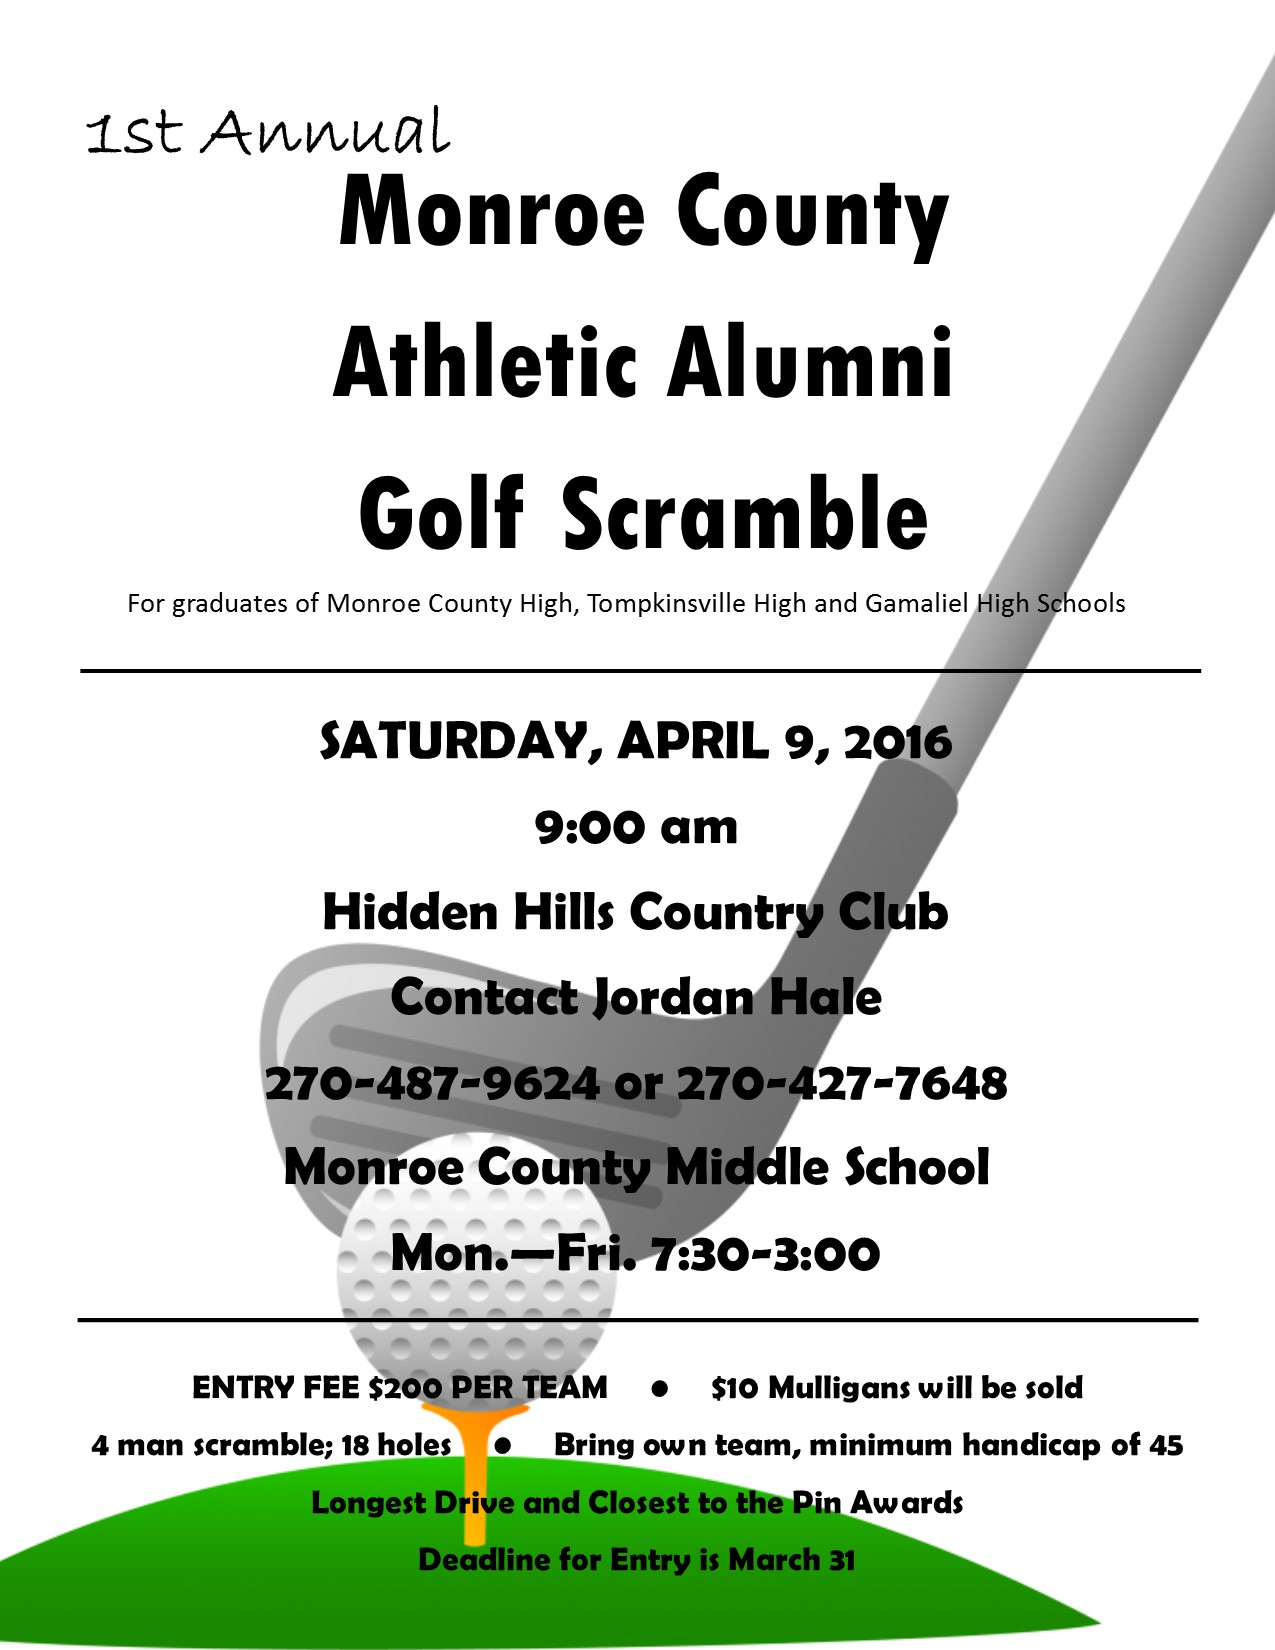 Monroe County Athletic Alumni Golf Scramble